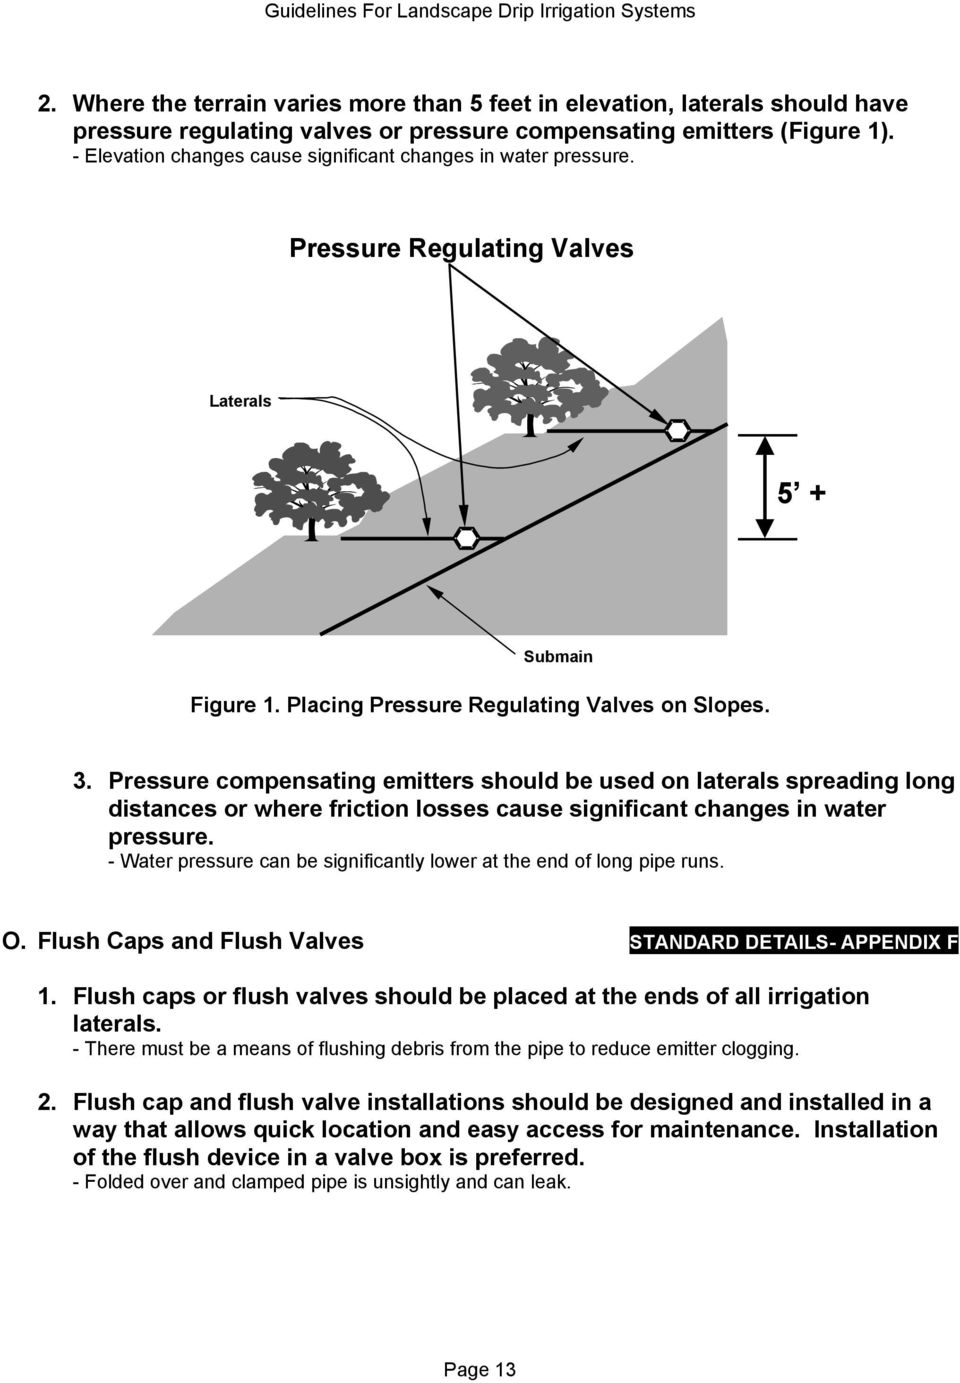 Pressure compensating emitters should be used on laterals spreading long distances or where friction losses cause significant changes in water pressure.